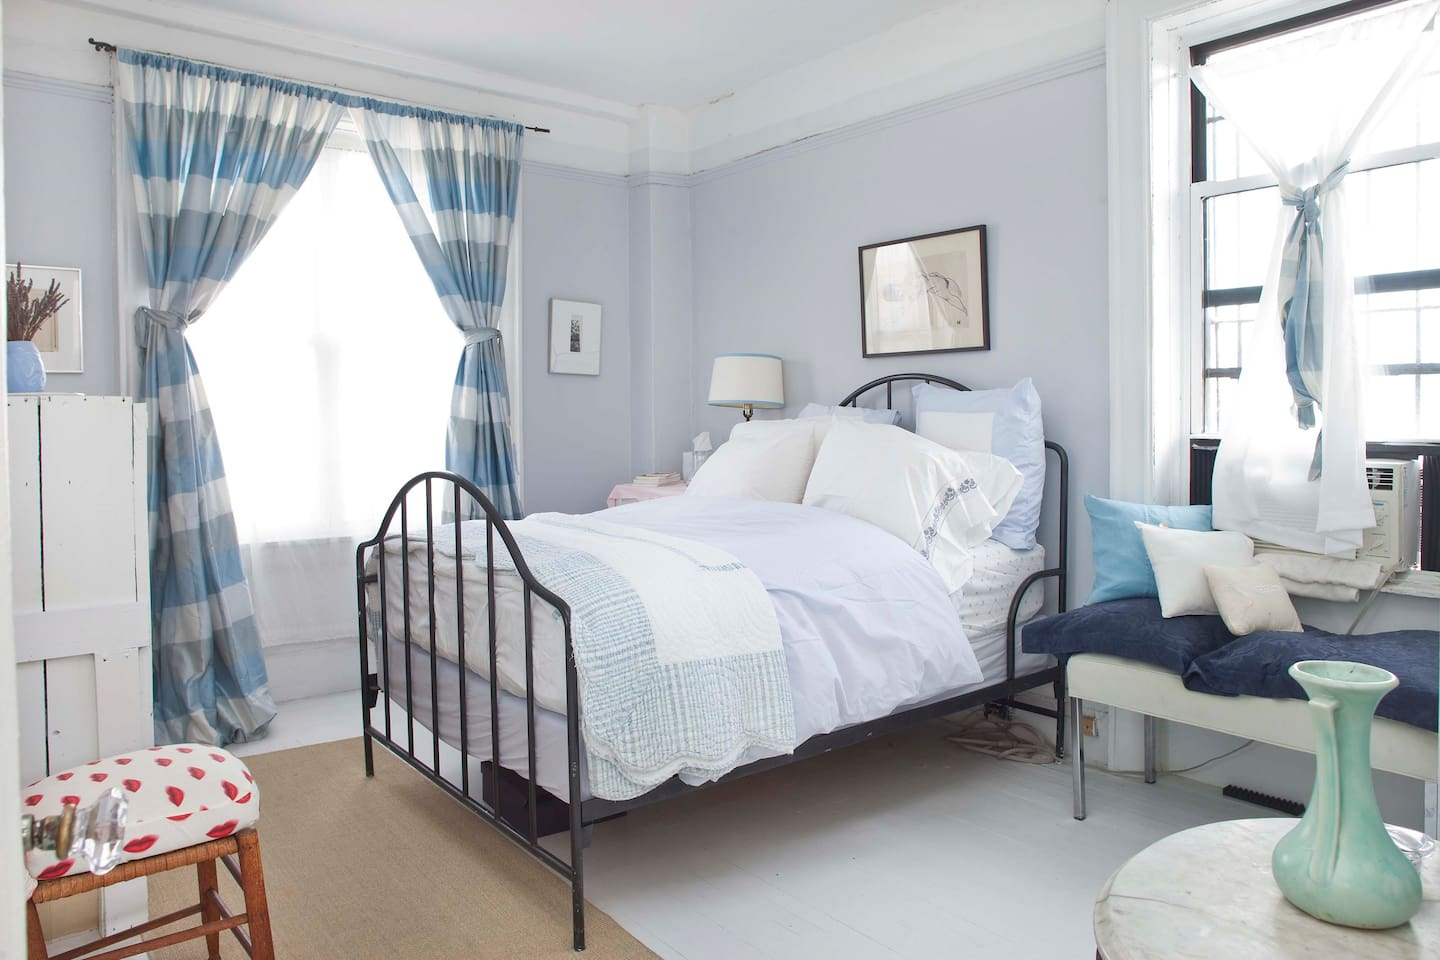 the bedroom that is available